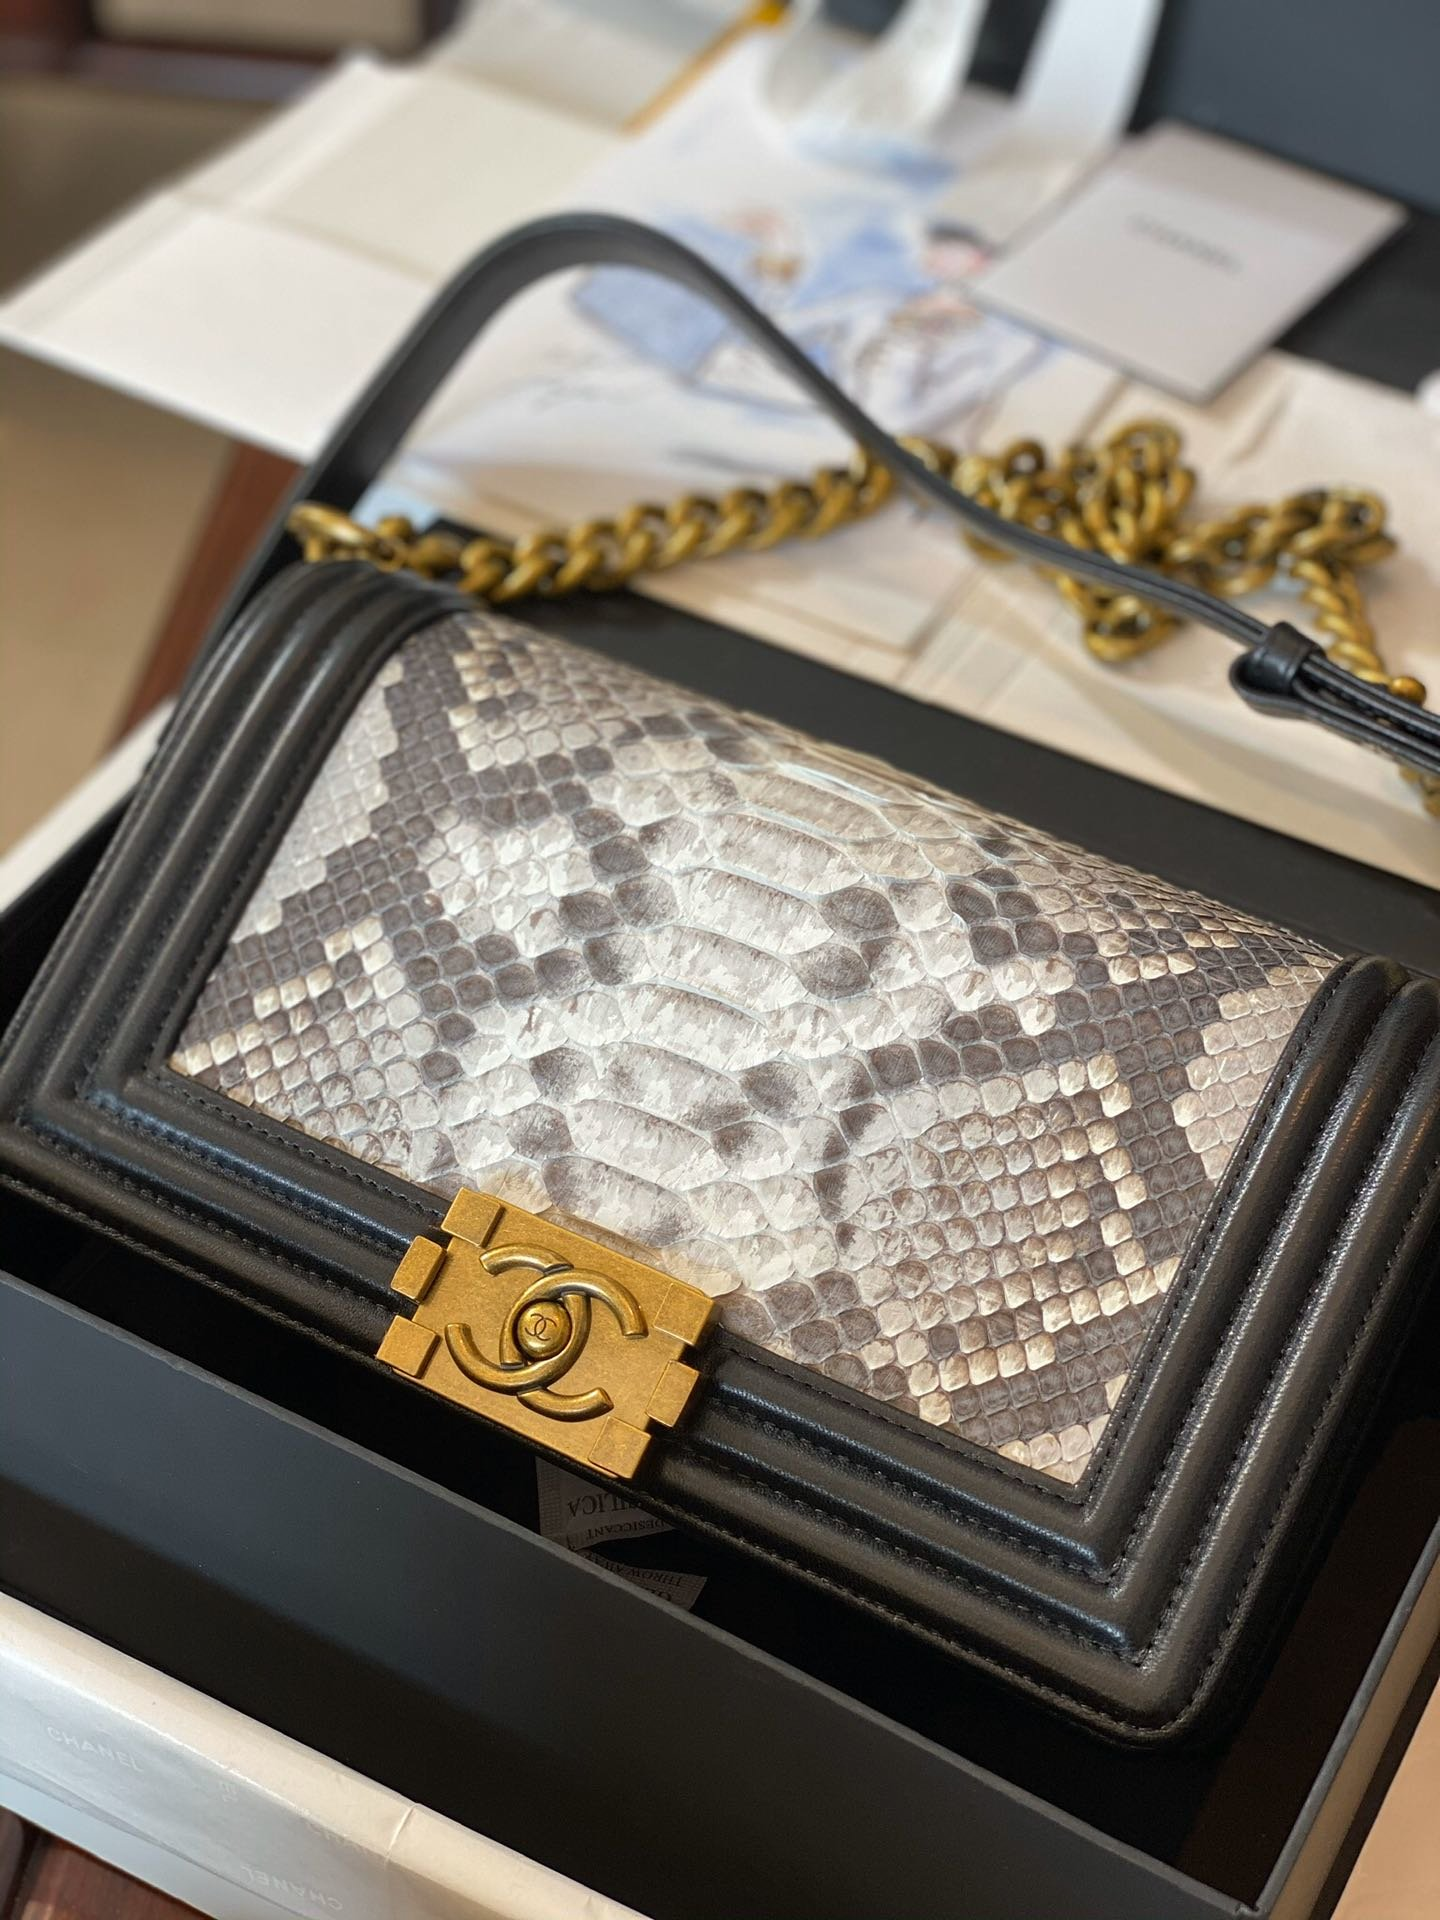 Replica Boy Chanel Bag South African Python Skin with Imported Sheepskin Gold-Tone Metal 001